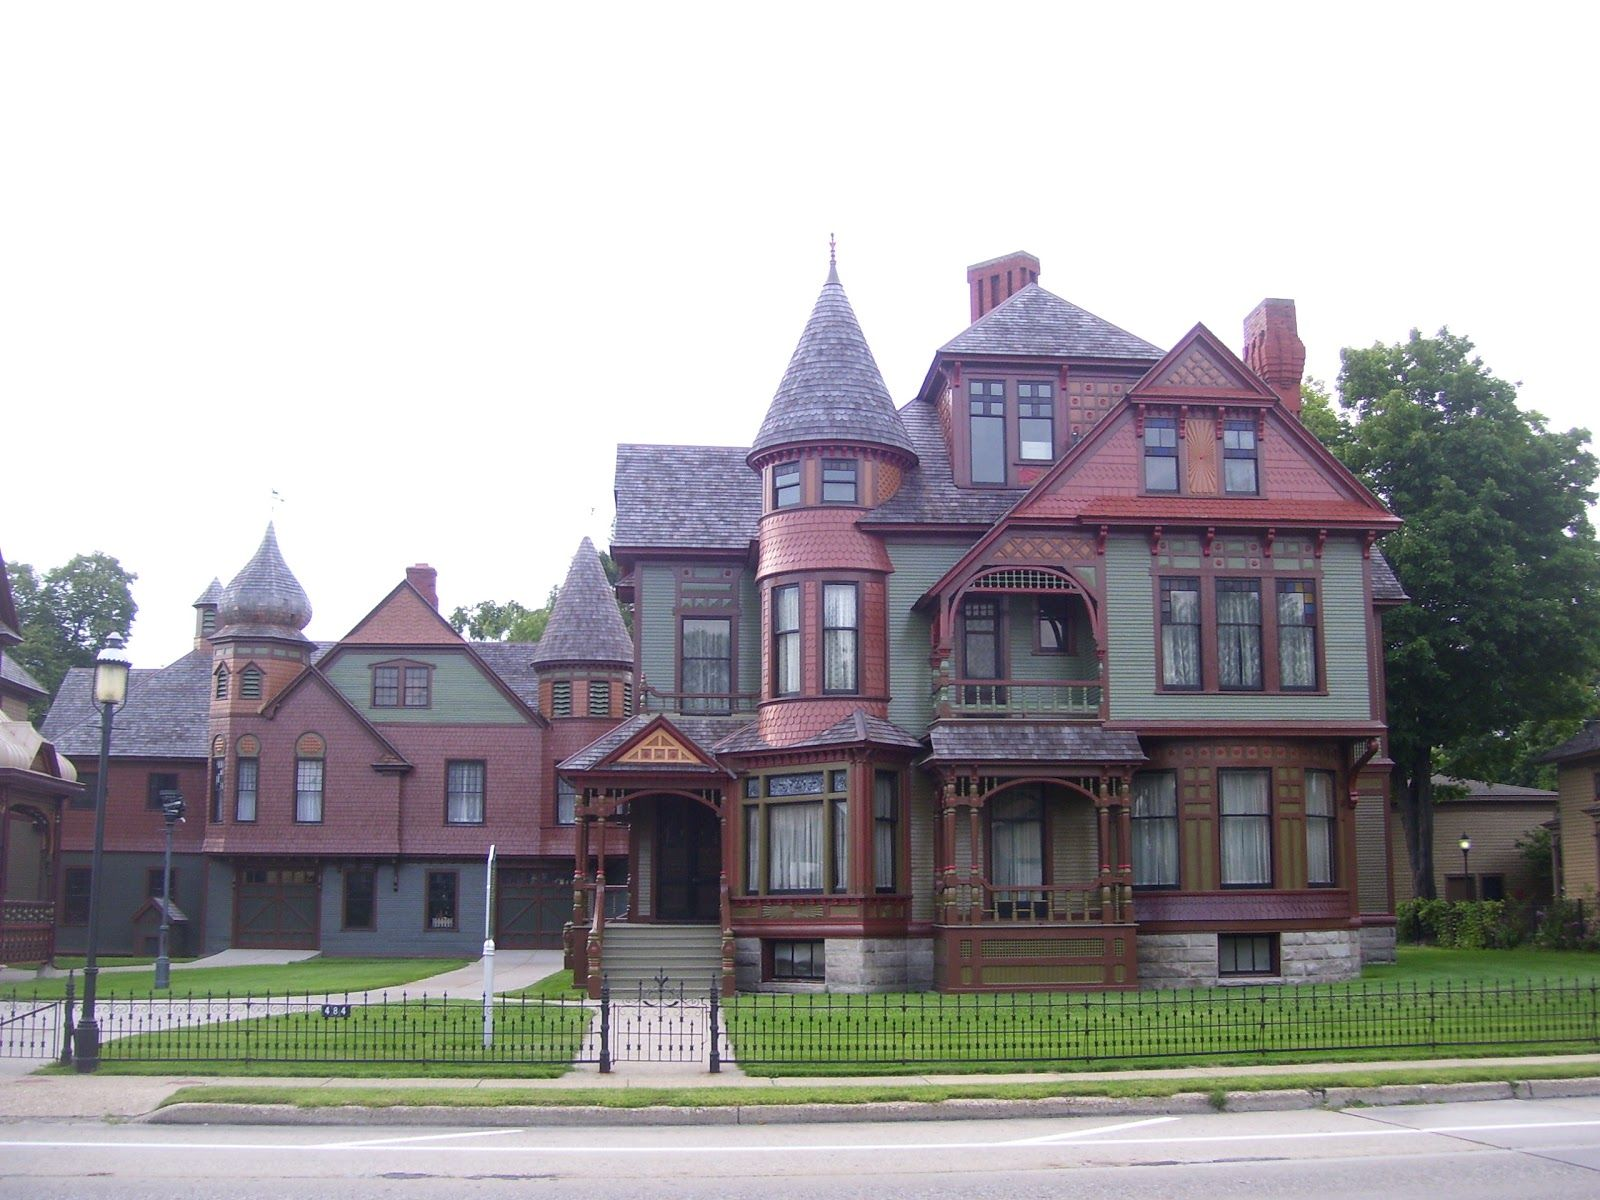 Victorian Homes Michigan The Hackley And Hume Historic Homes Muskegon Michigan Historic Homes Victorian Homes Muskegon Michigan